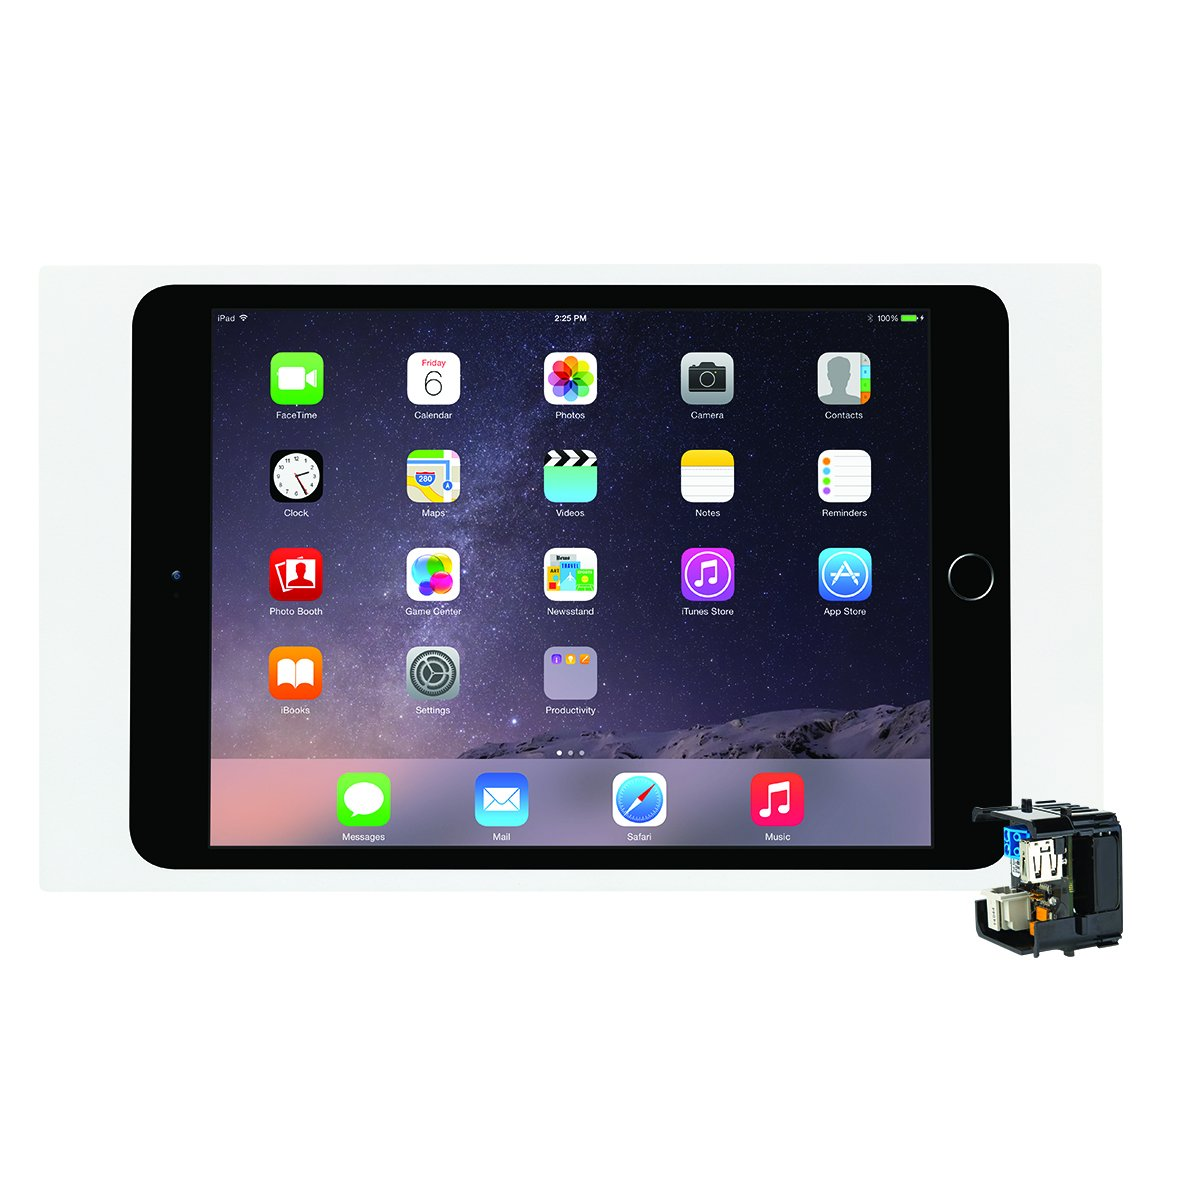 iPort 70739 Surface Mount System (Bezel for iPad Air, 2 and Pro 9.7''- White and PoE Splitter)